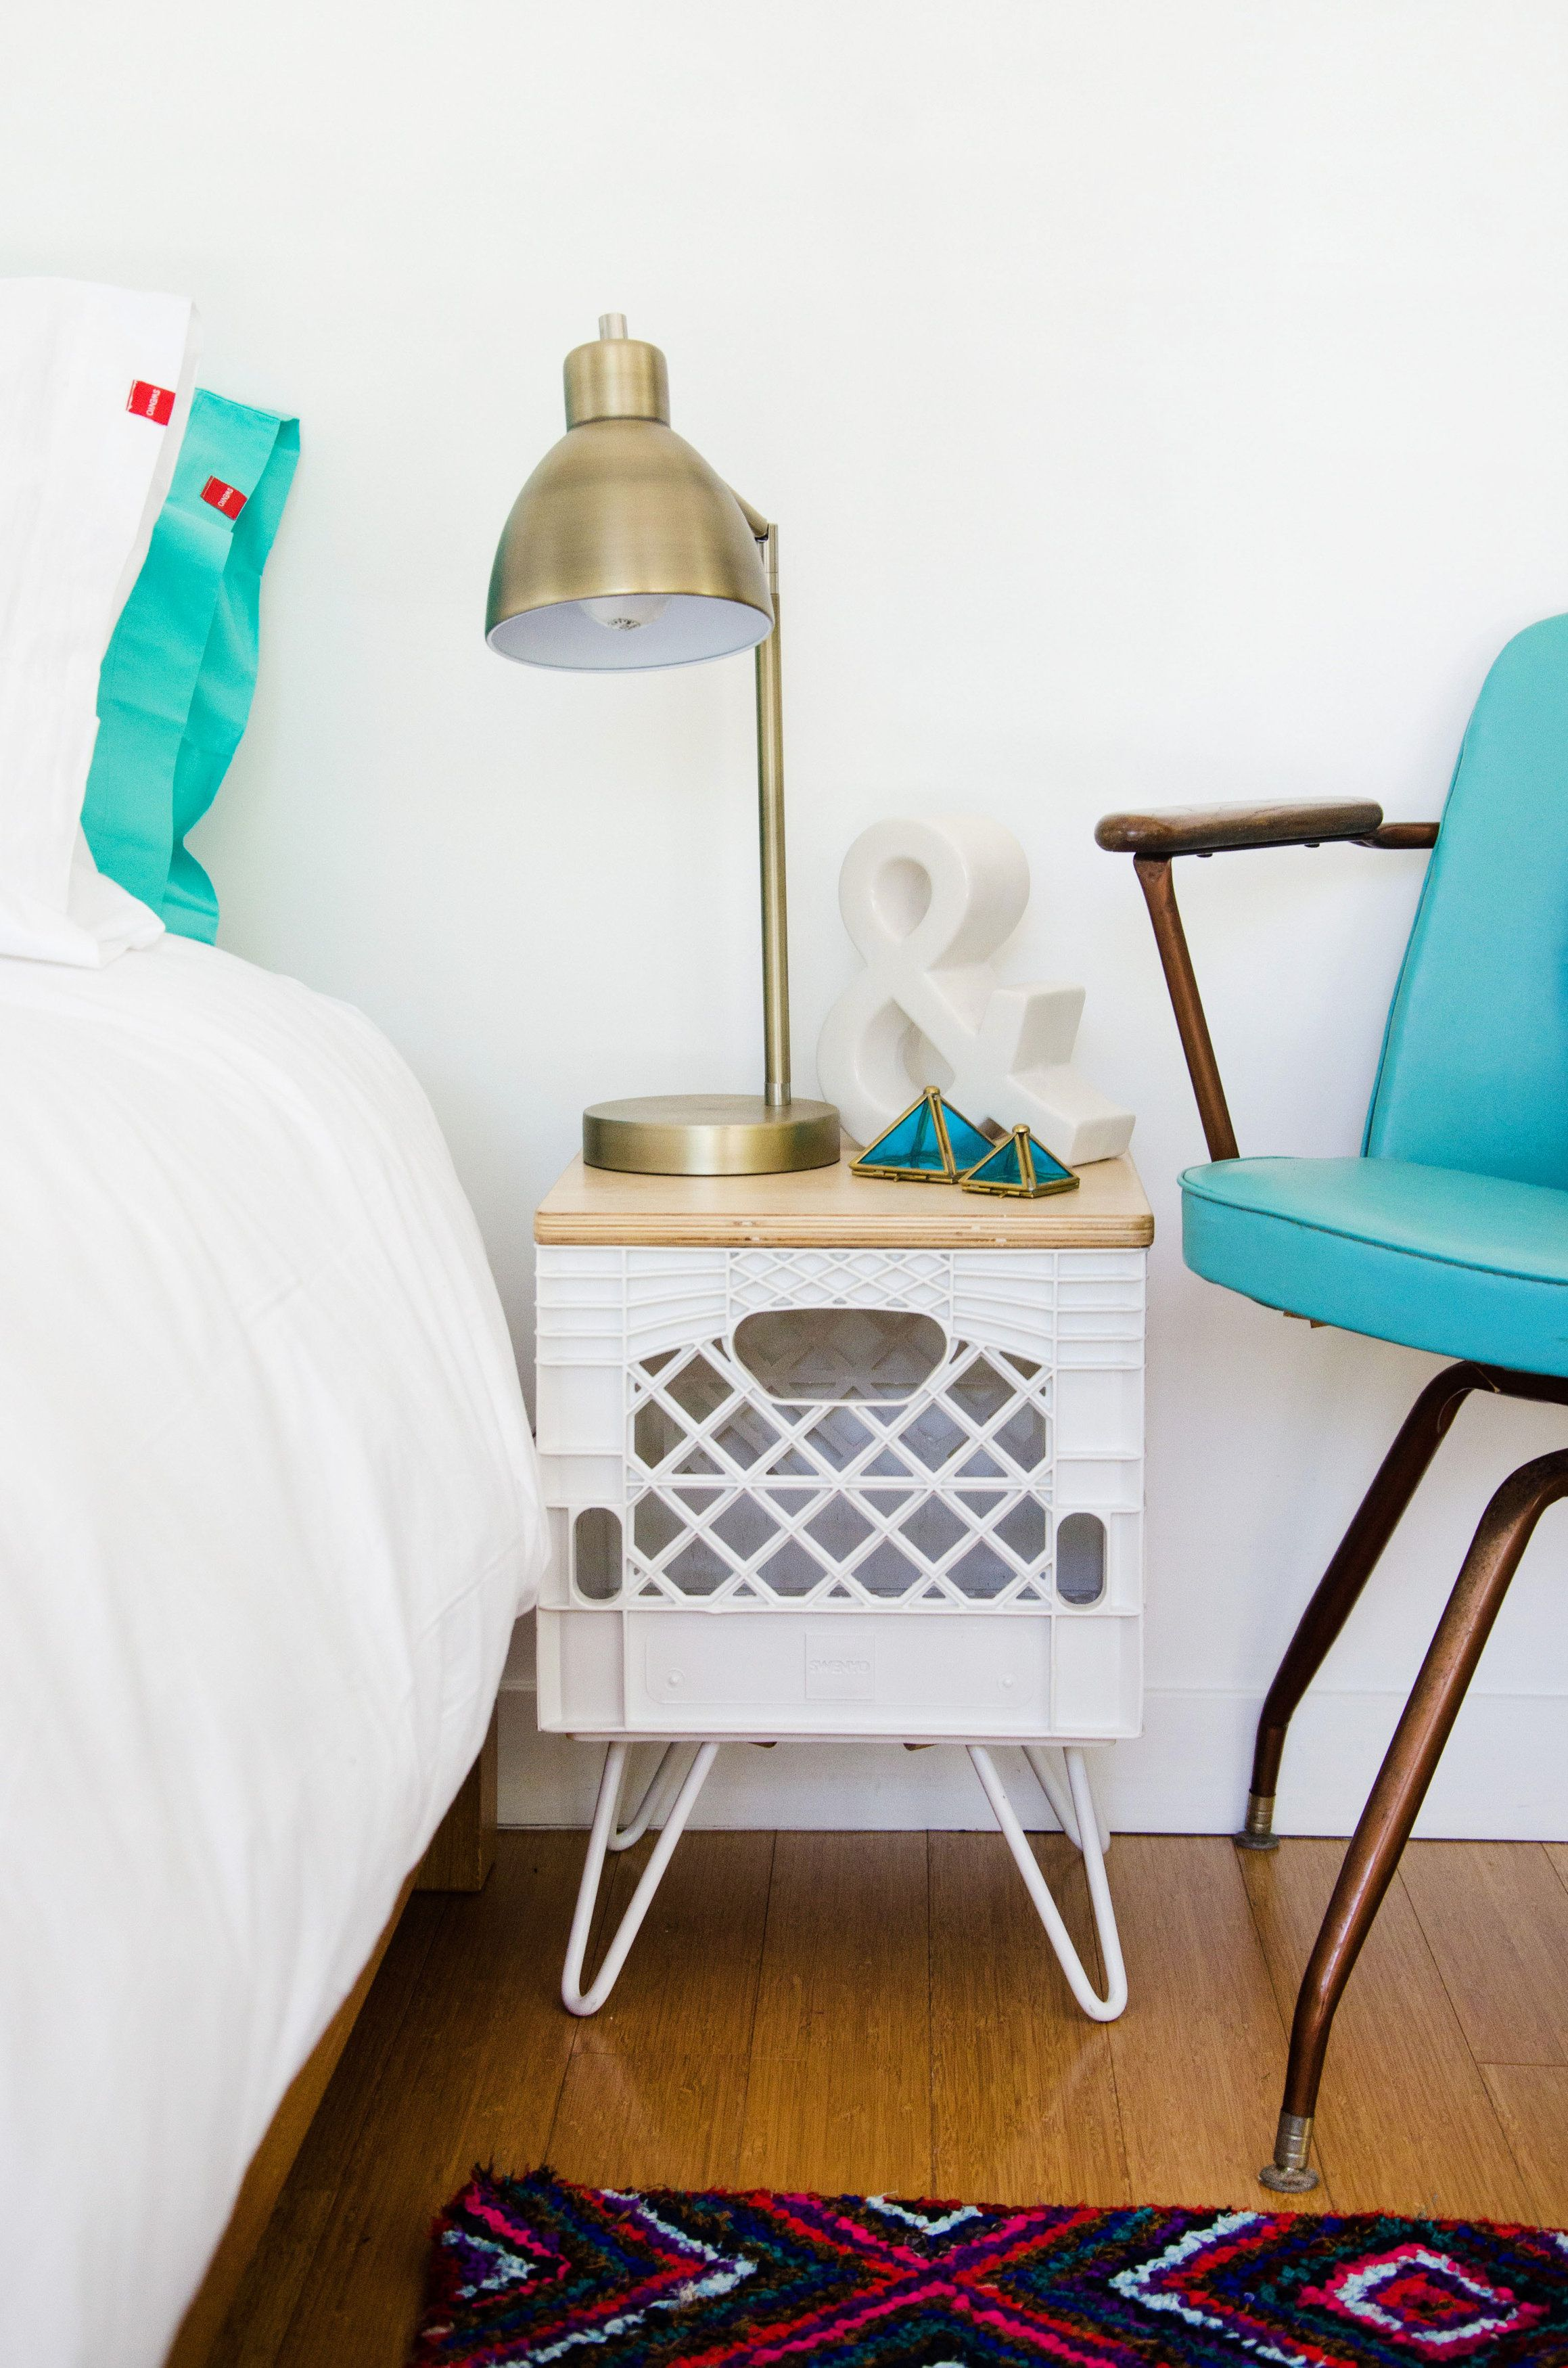 Milk Crate Nightstand. A combination of vintage and modern. #hairpinlegs #modern #SWENYO